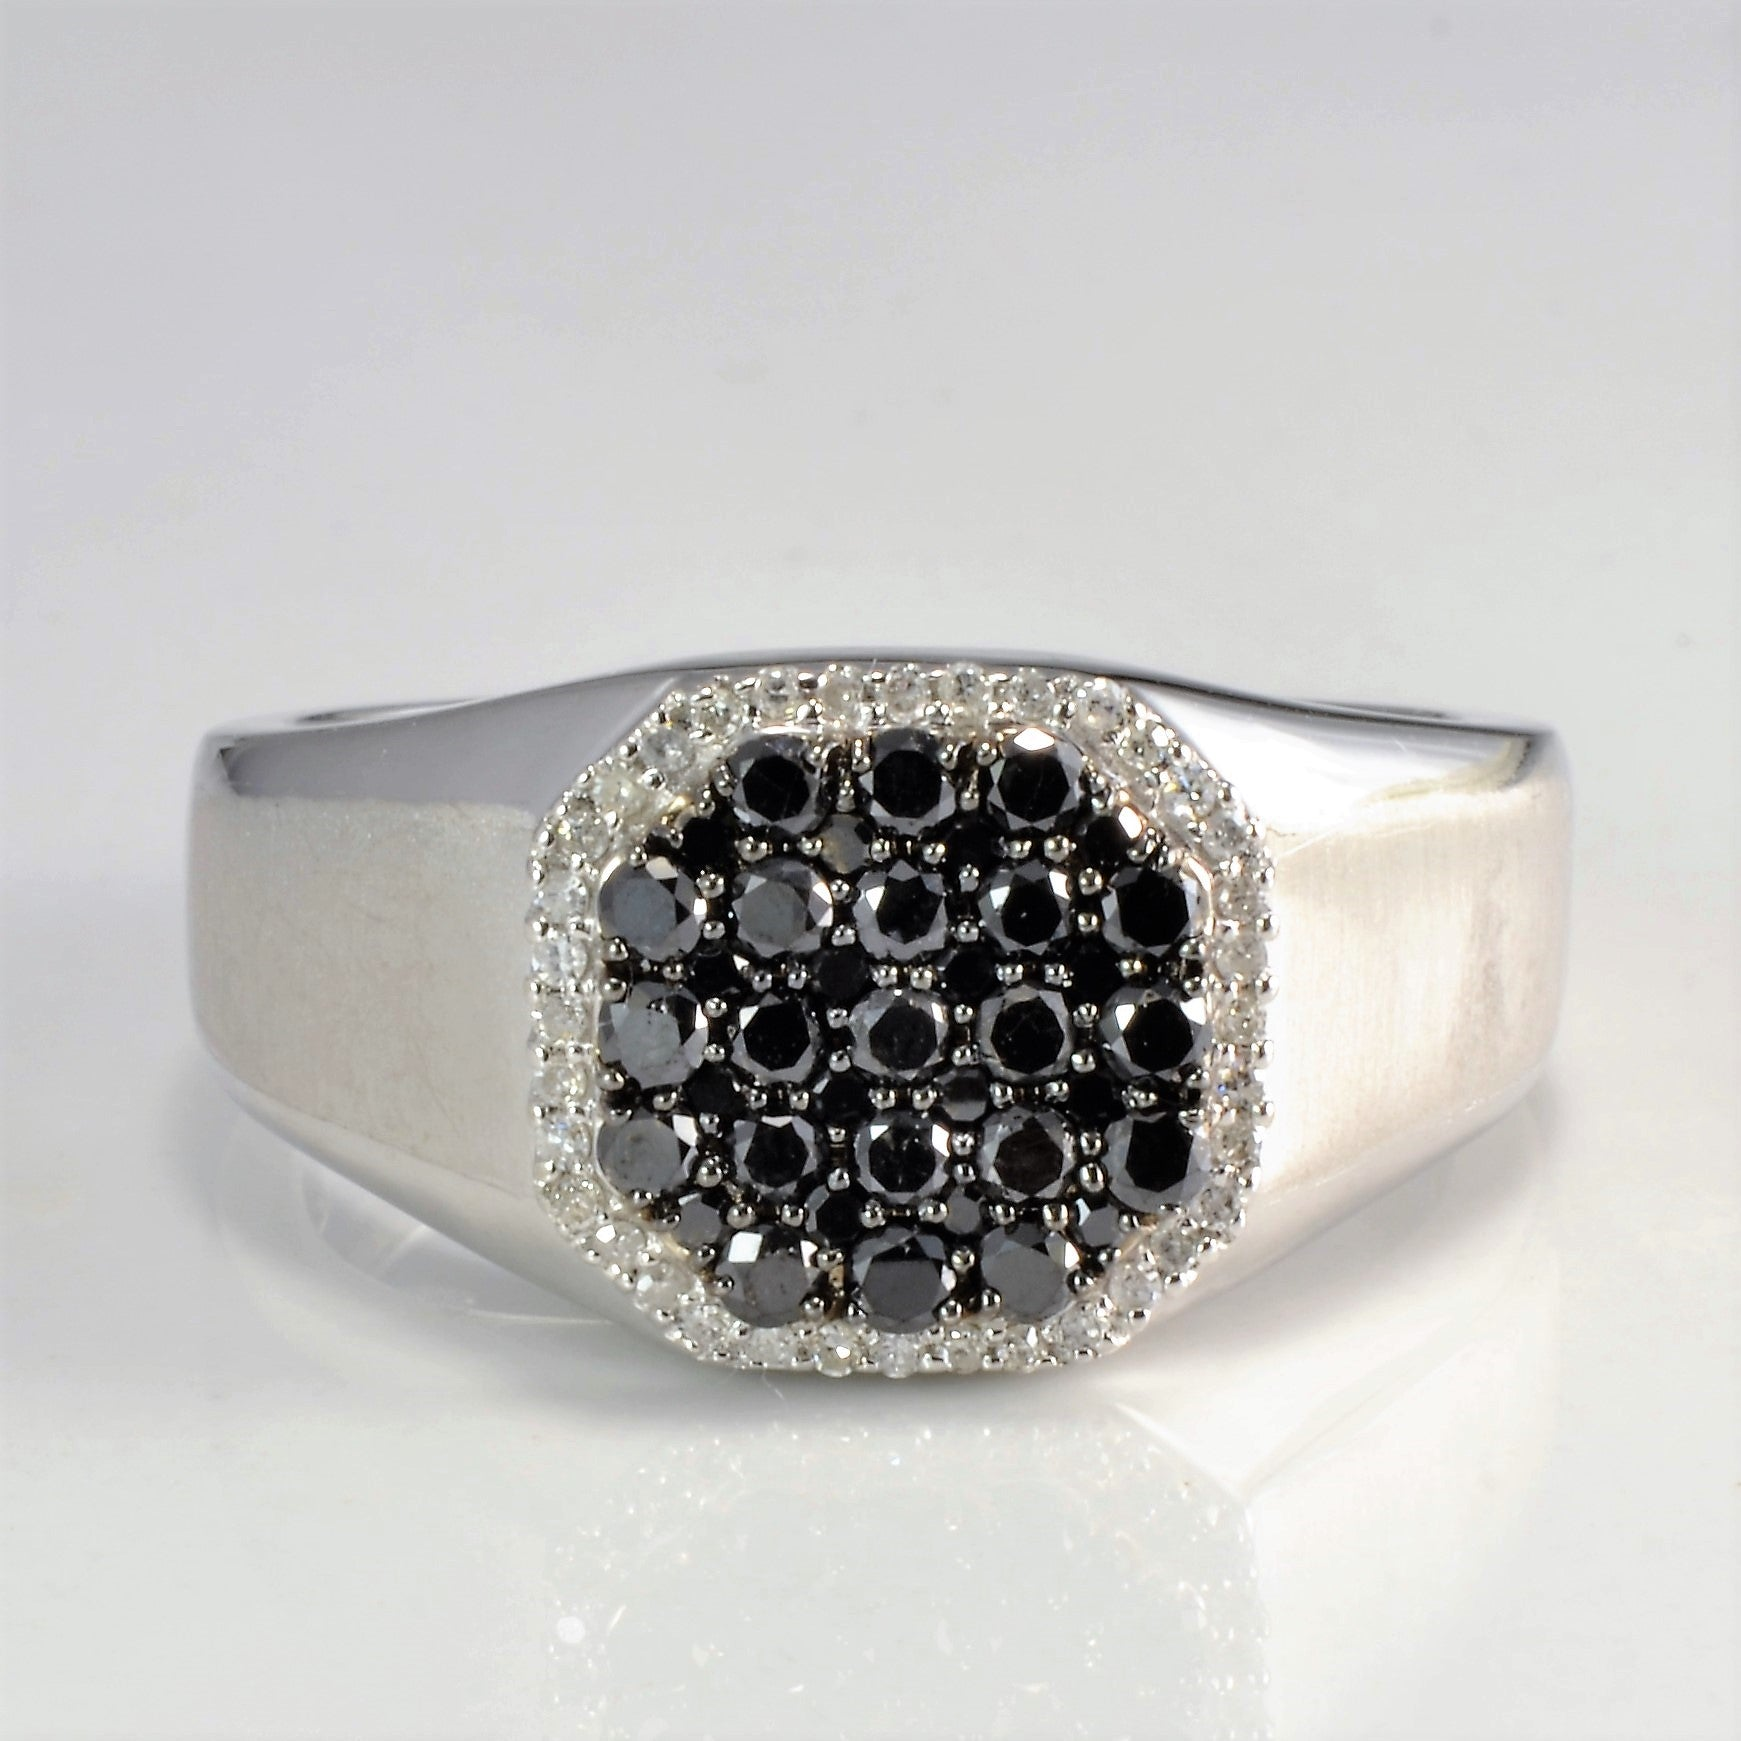 Cluster Set Diamond Men's Ring | 0.64 ctw, SZ 10 |